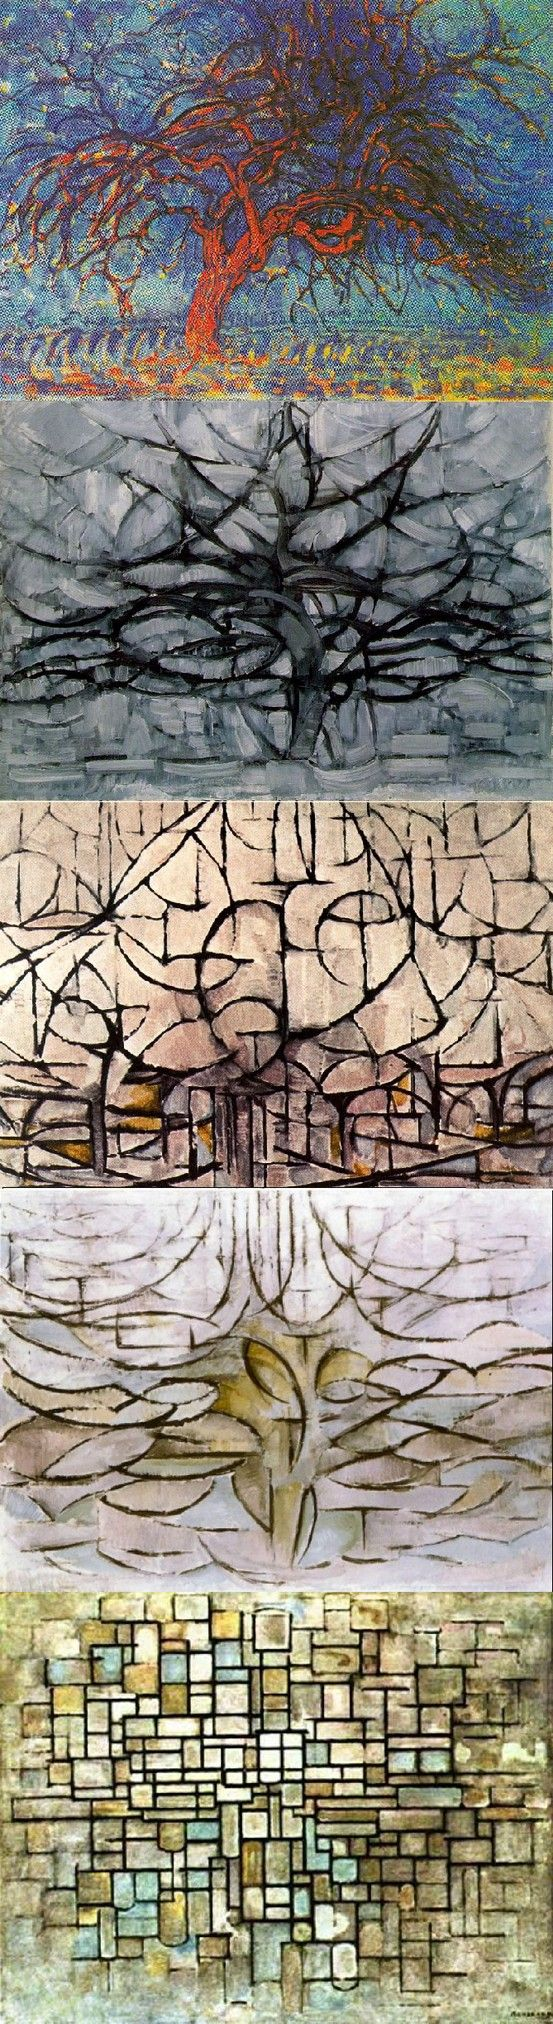 mondrian u0027s trees my favourite series of paintings love the point